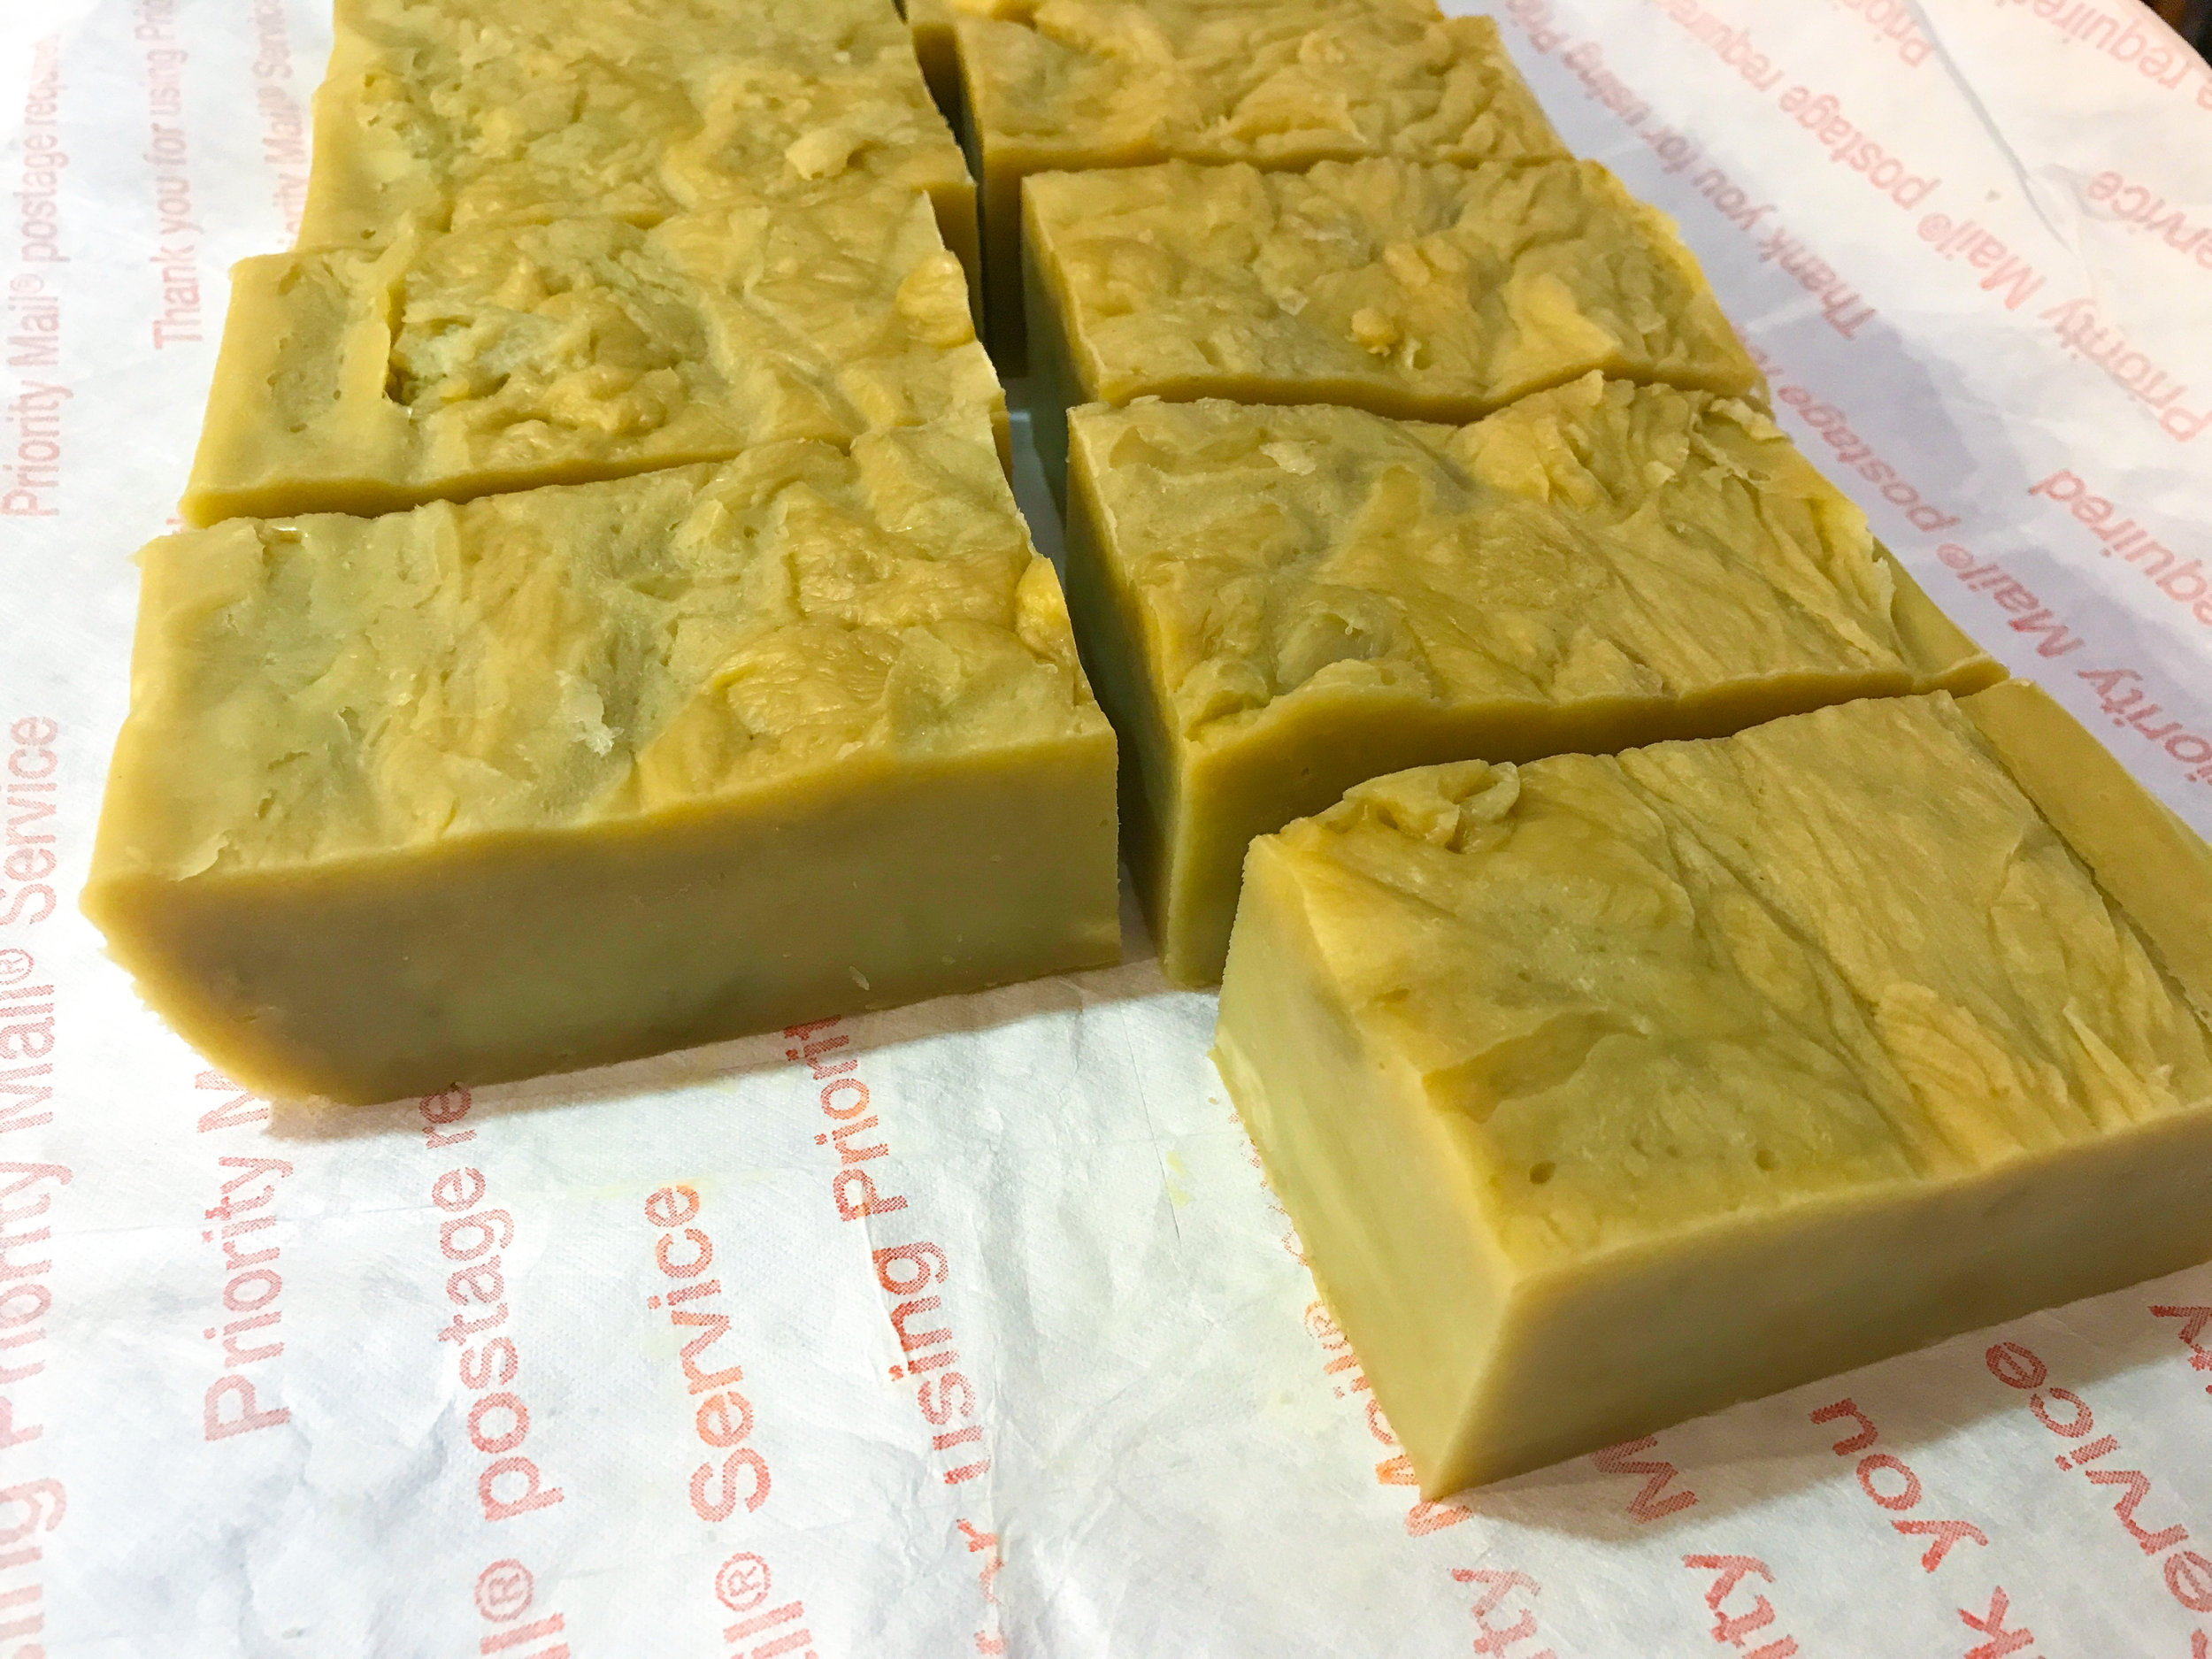 Freshly cut homemade soap!